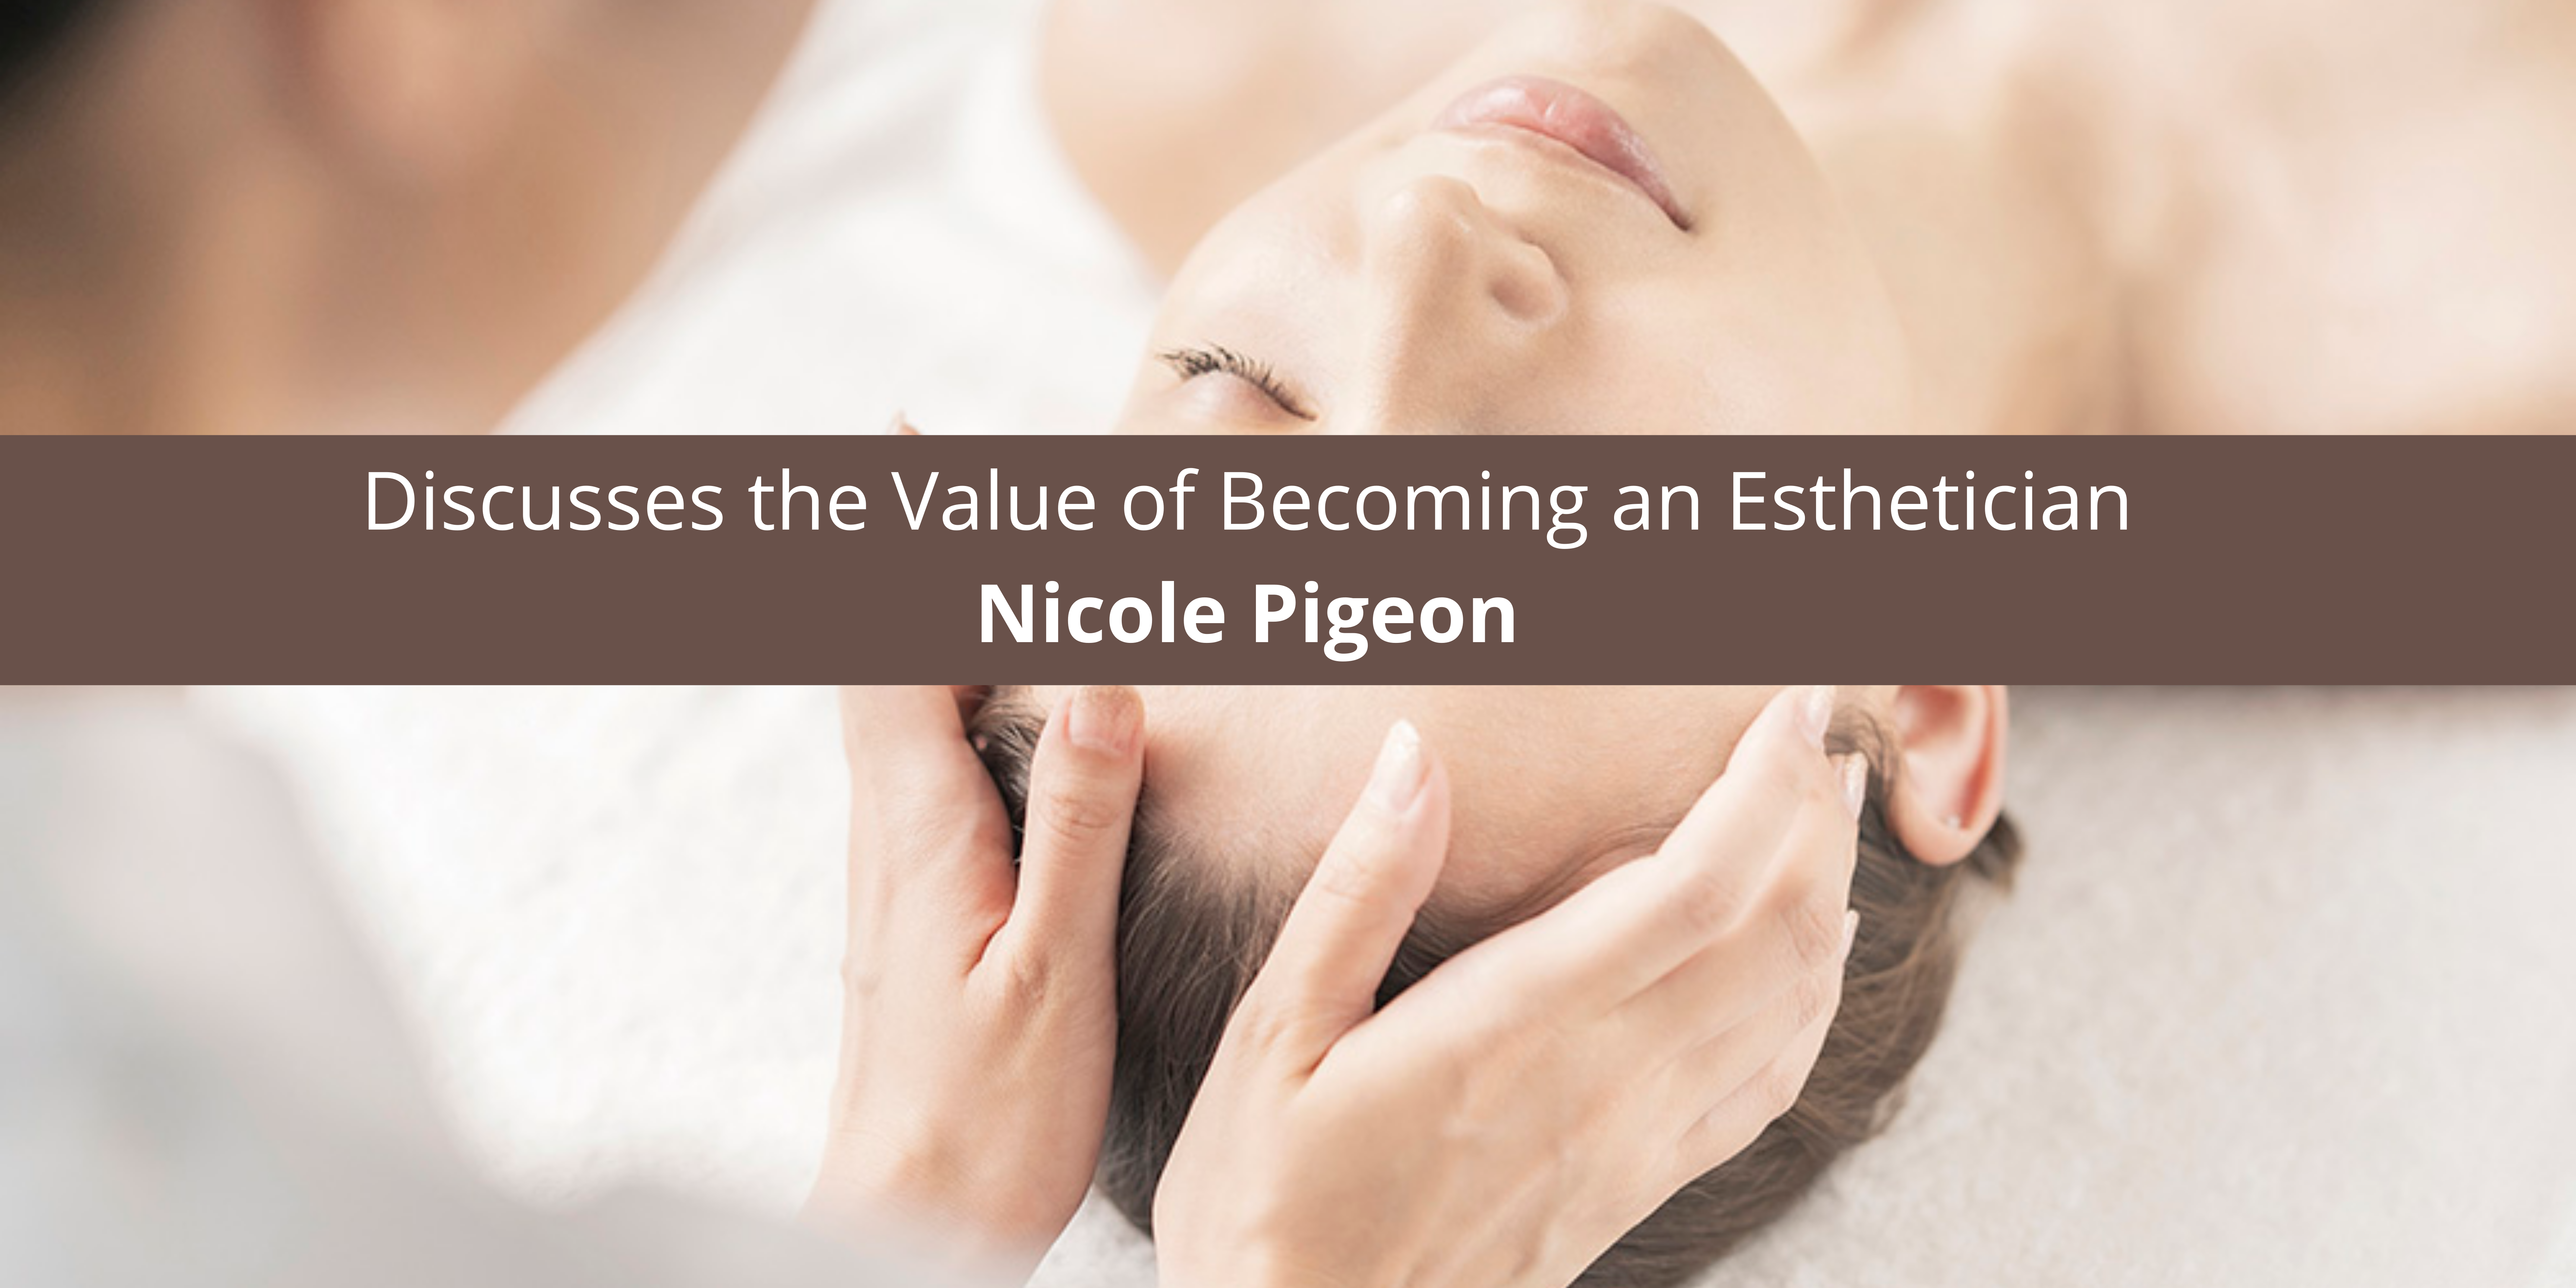 Nicole Pigeon Florida Discusses the Value of Becoming an Esthetician